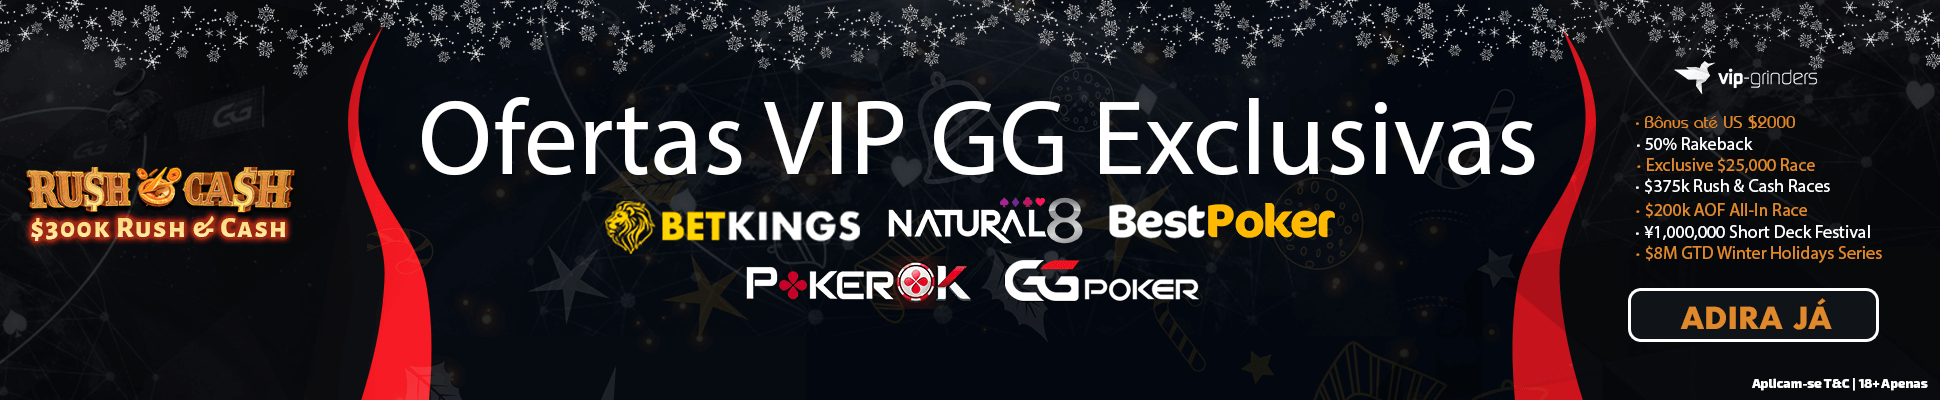 exclusive-ggvip-ggnetwork-vip-deals-1940x400-janeiro